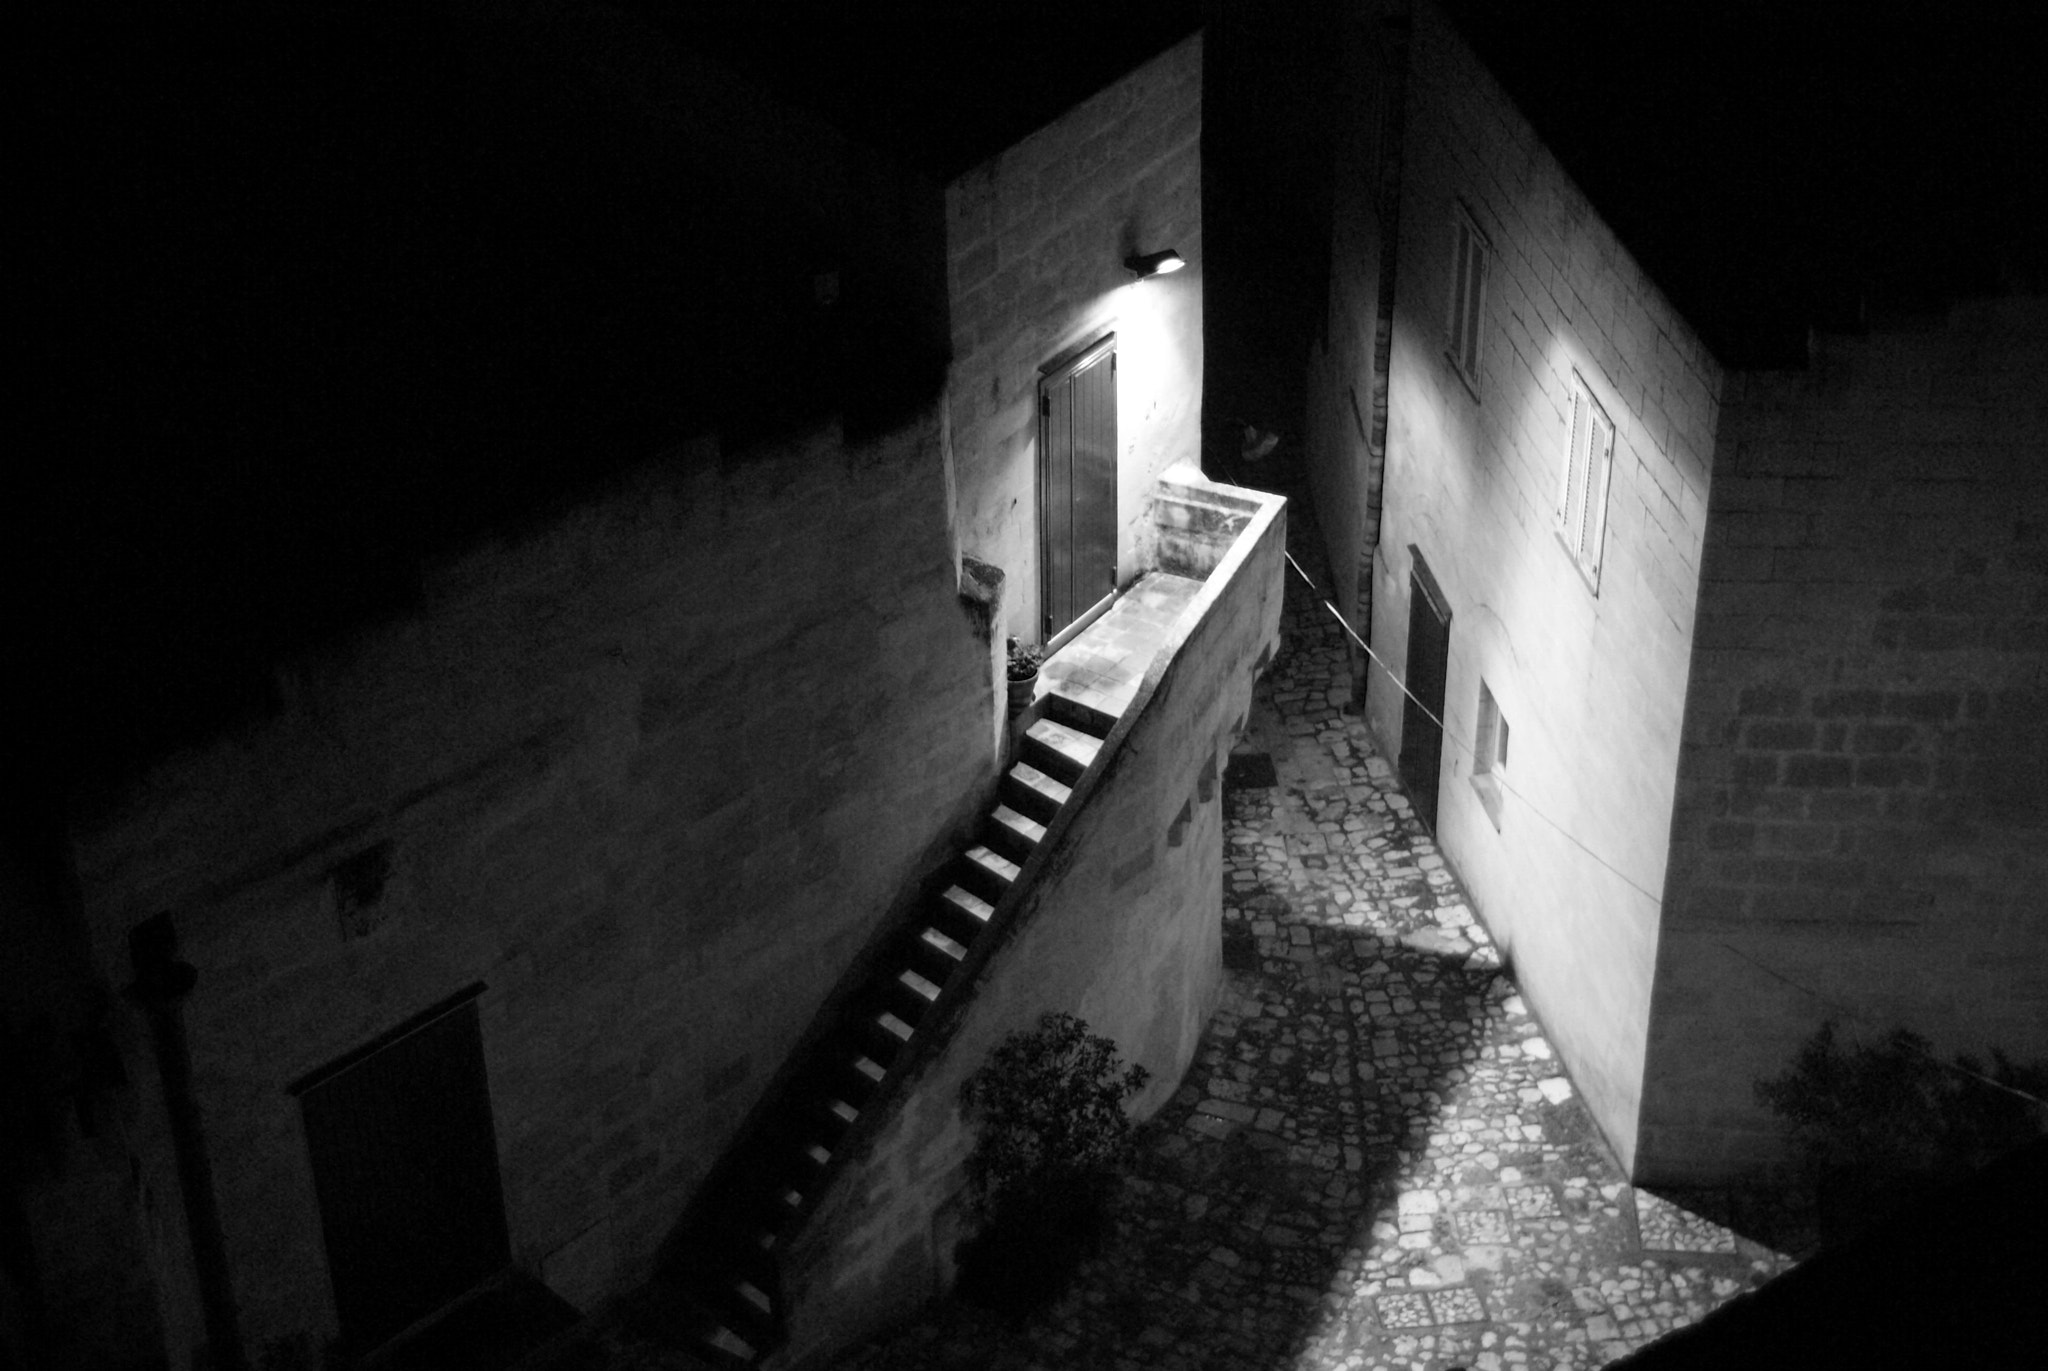 Photograph Spot on darkness scale by Maurizio Natali on 500px